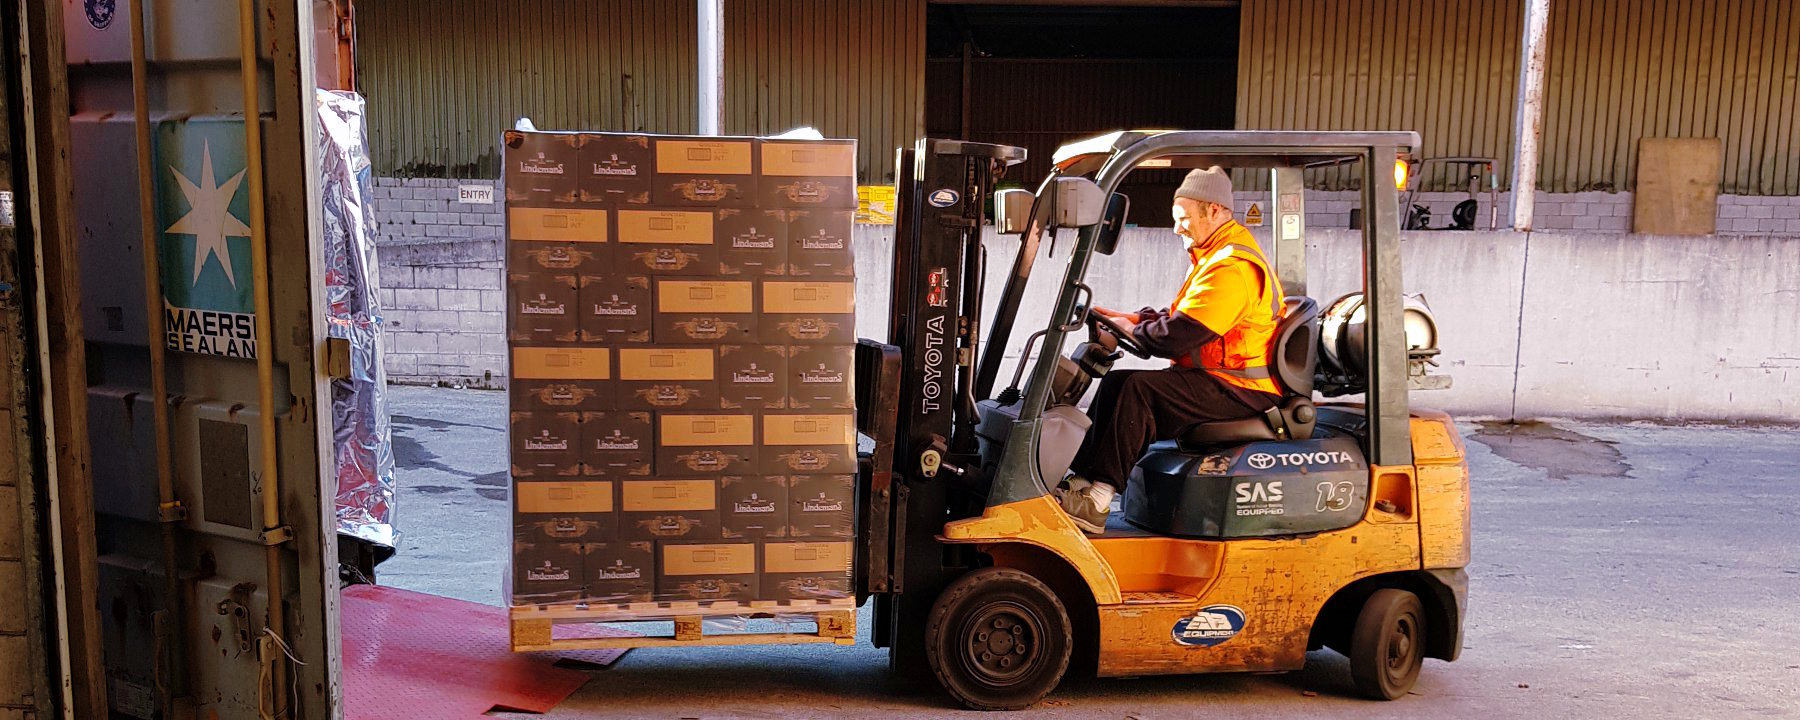 Shipping container and beers on forklift - Exceptional Flavours